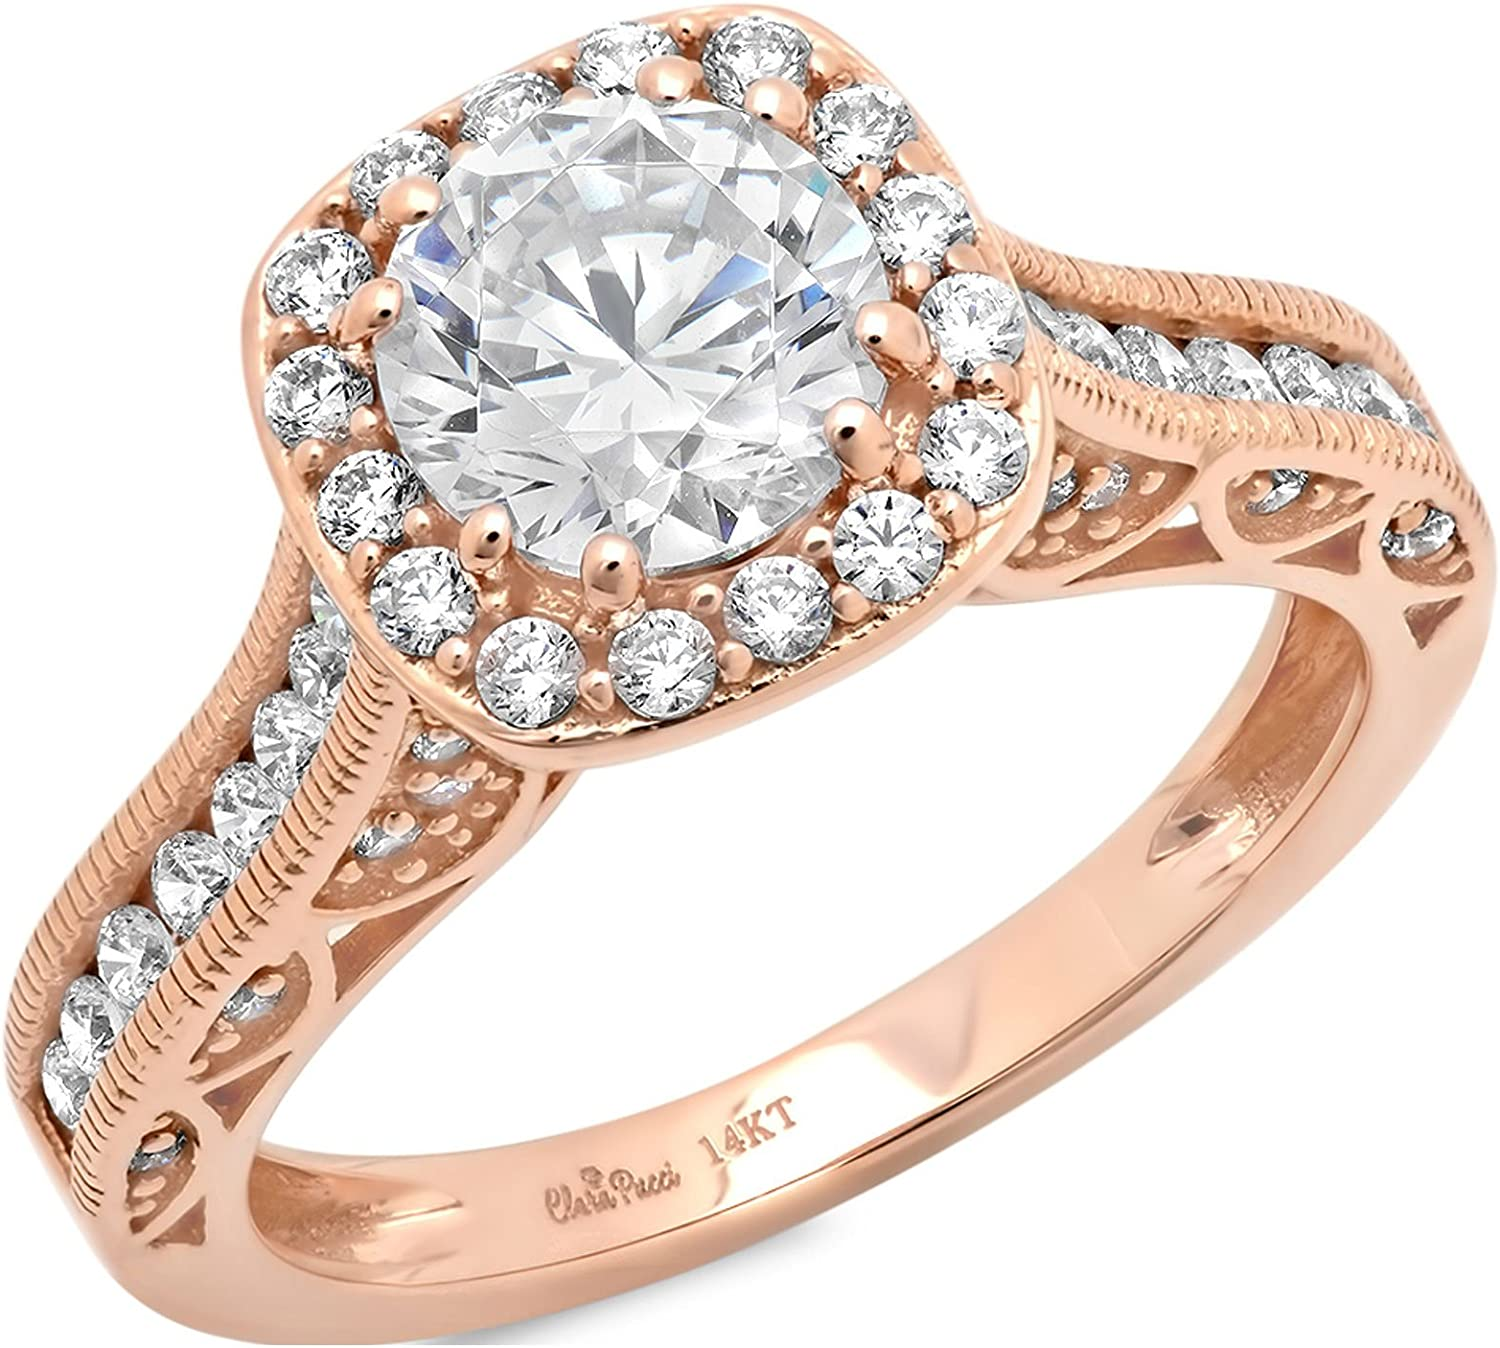 Clara Pucci 1.8 CT Round Cut Pave Halo Anniversary Promise Wedding Bridal Engagement Ring Band 14k Rose Gold